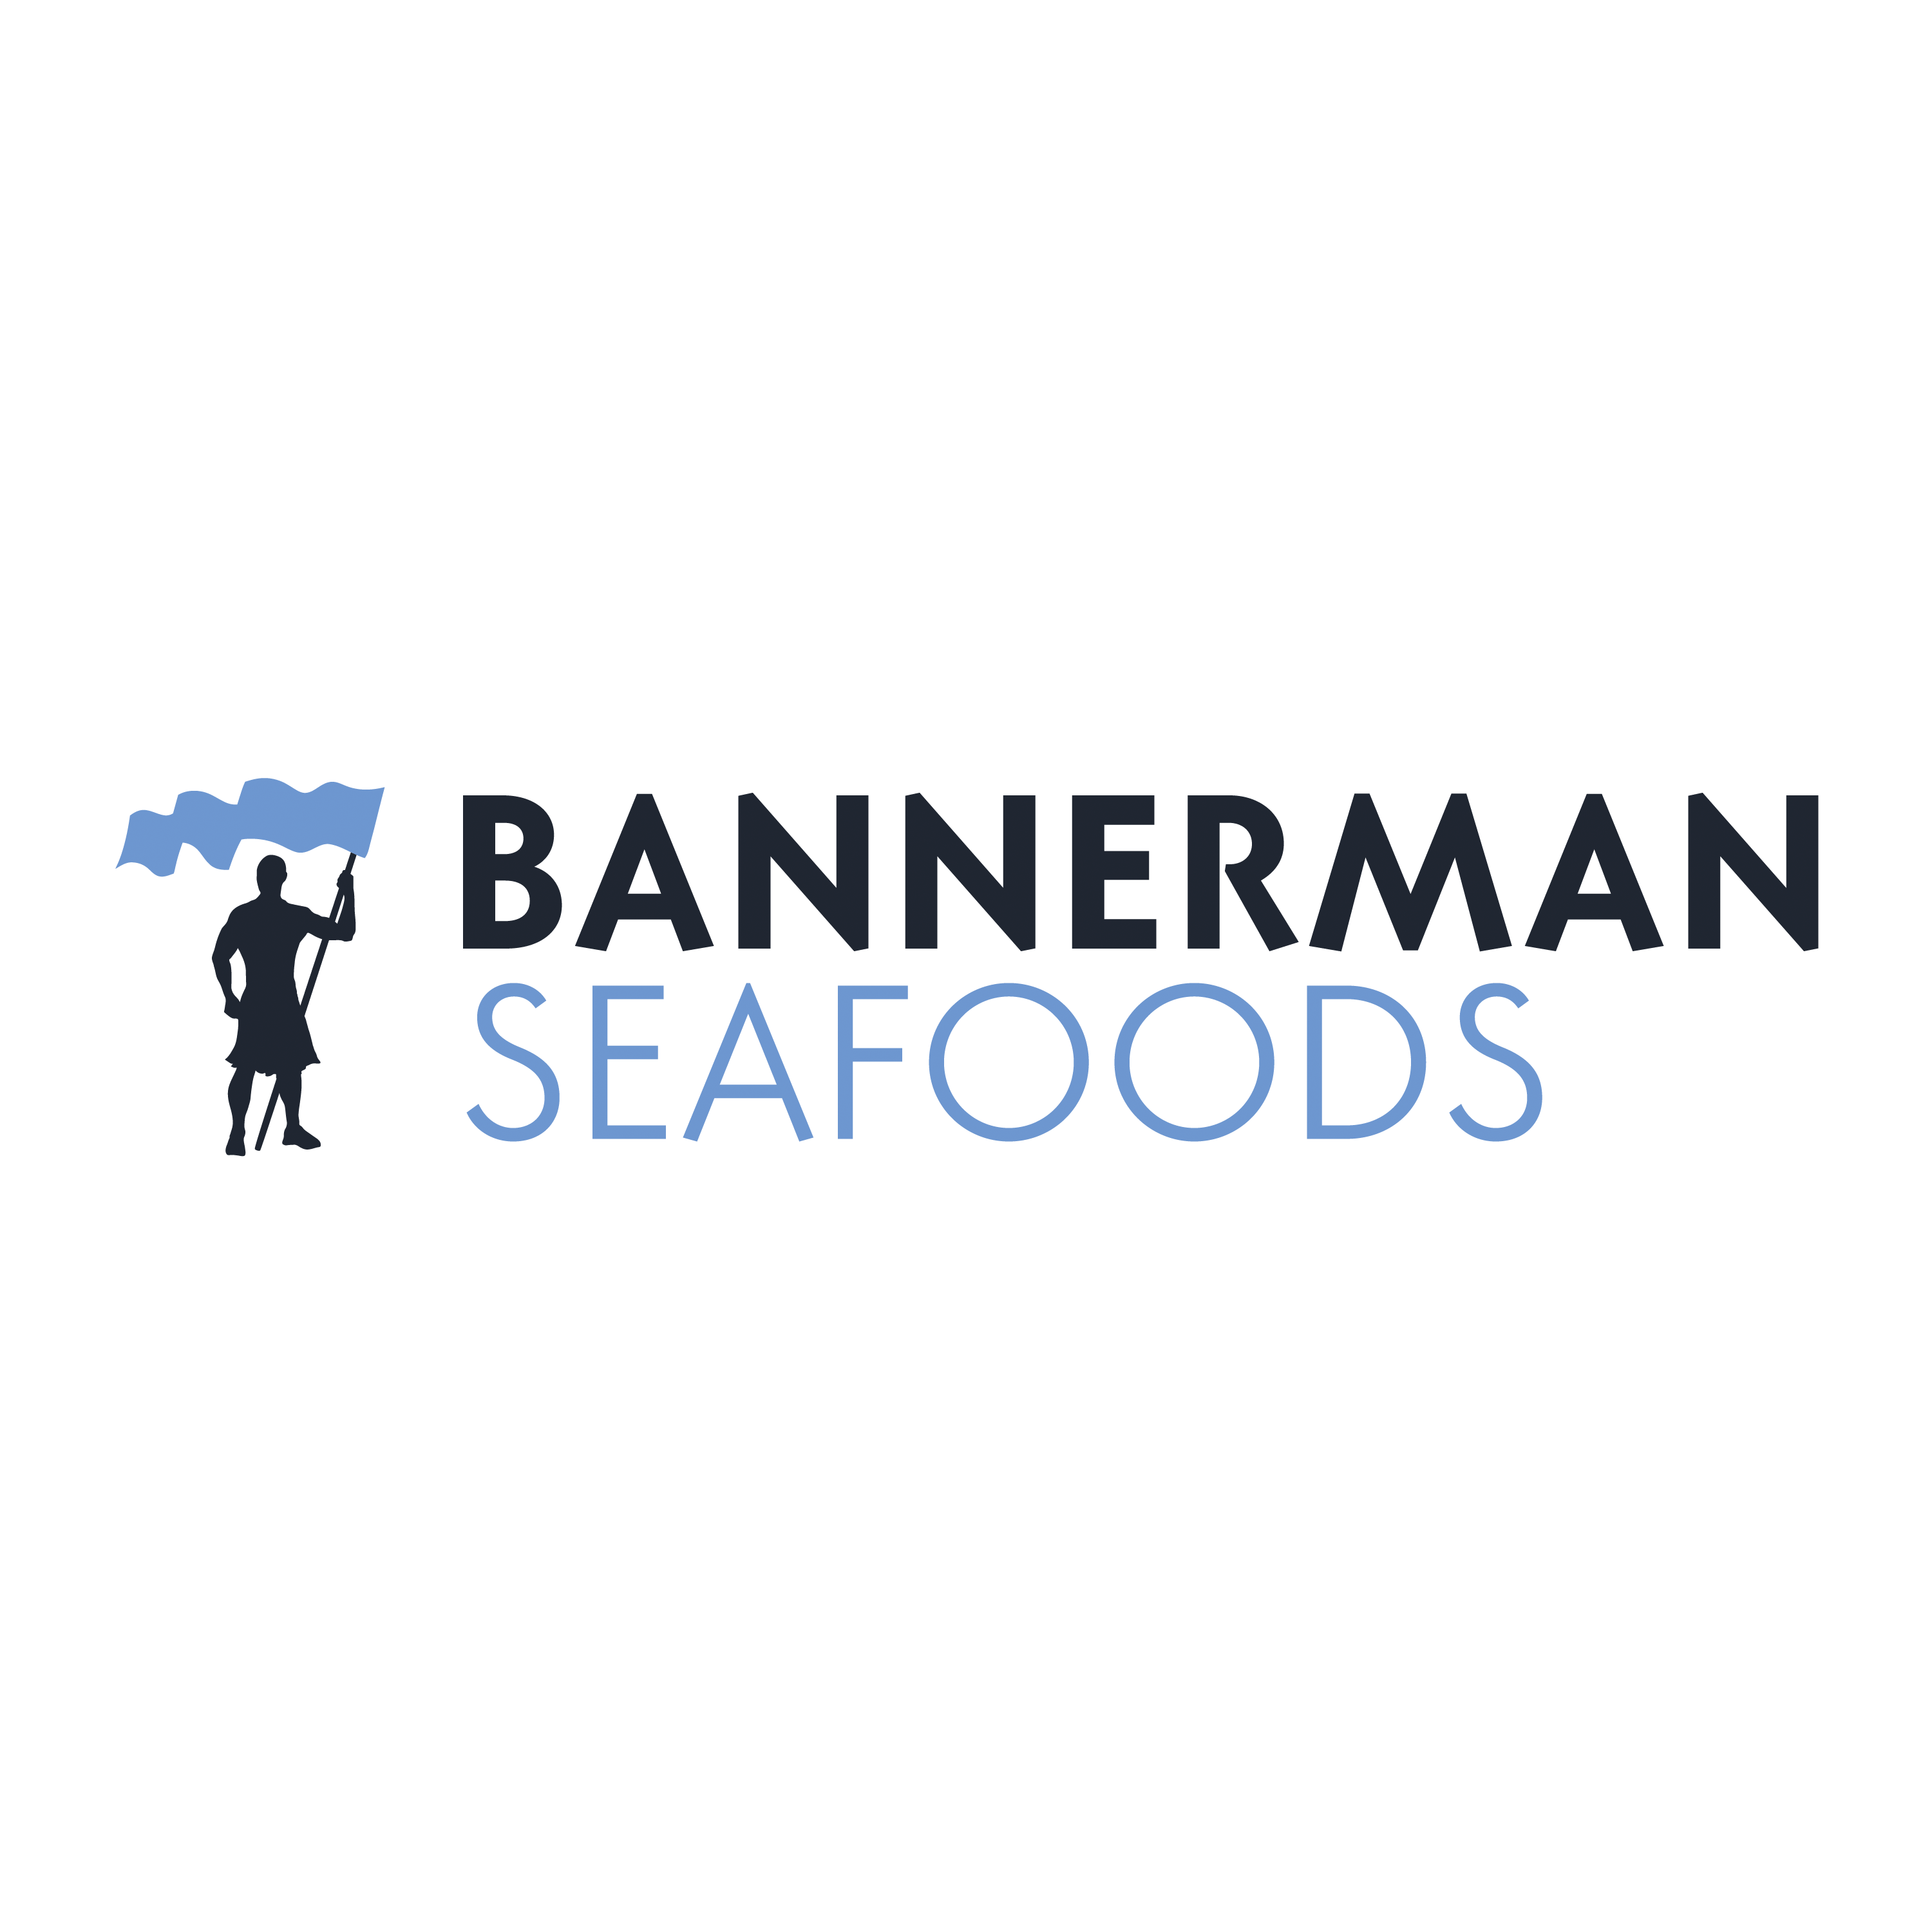 Bannerman Seafoods